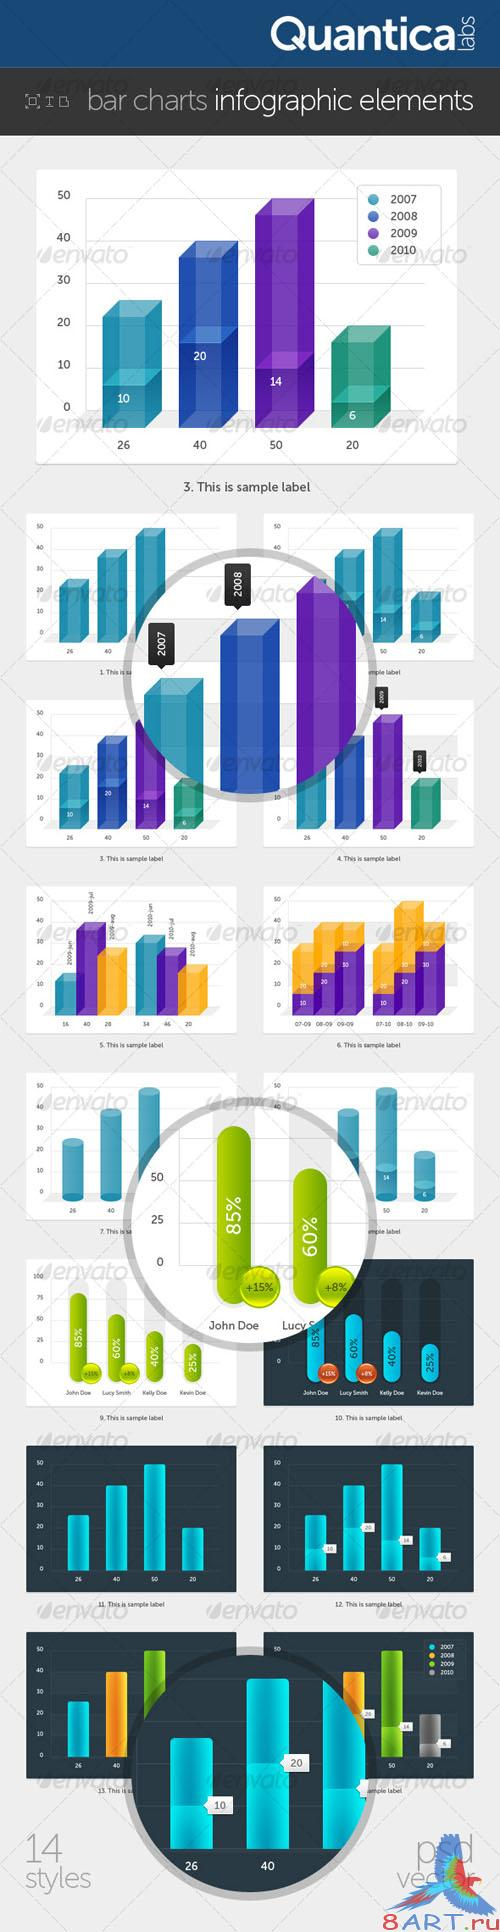 GraphicRiver - Bar Charts Infographic Elements